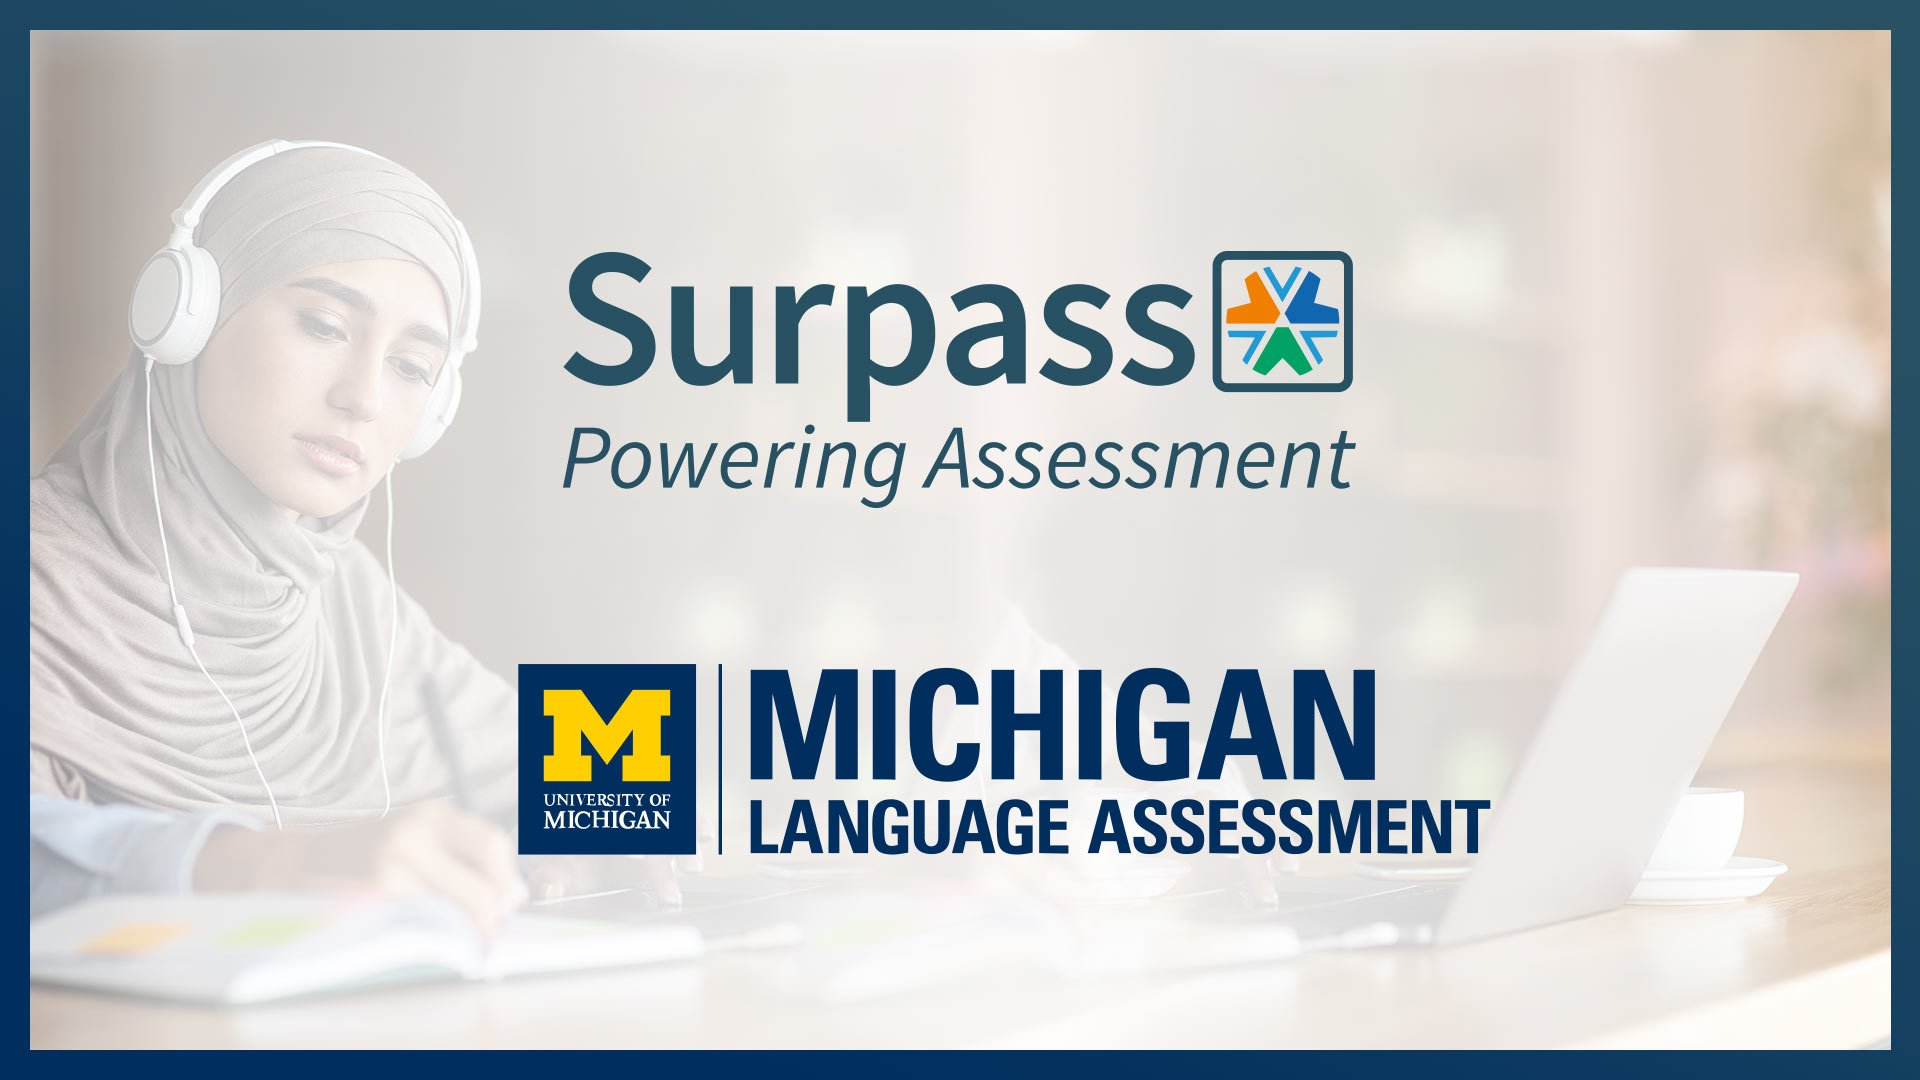 Michigan Language Assessment has selected Surpass to move from paper-based testing to digital English language testing